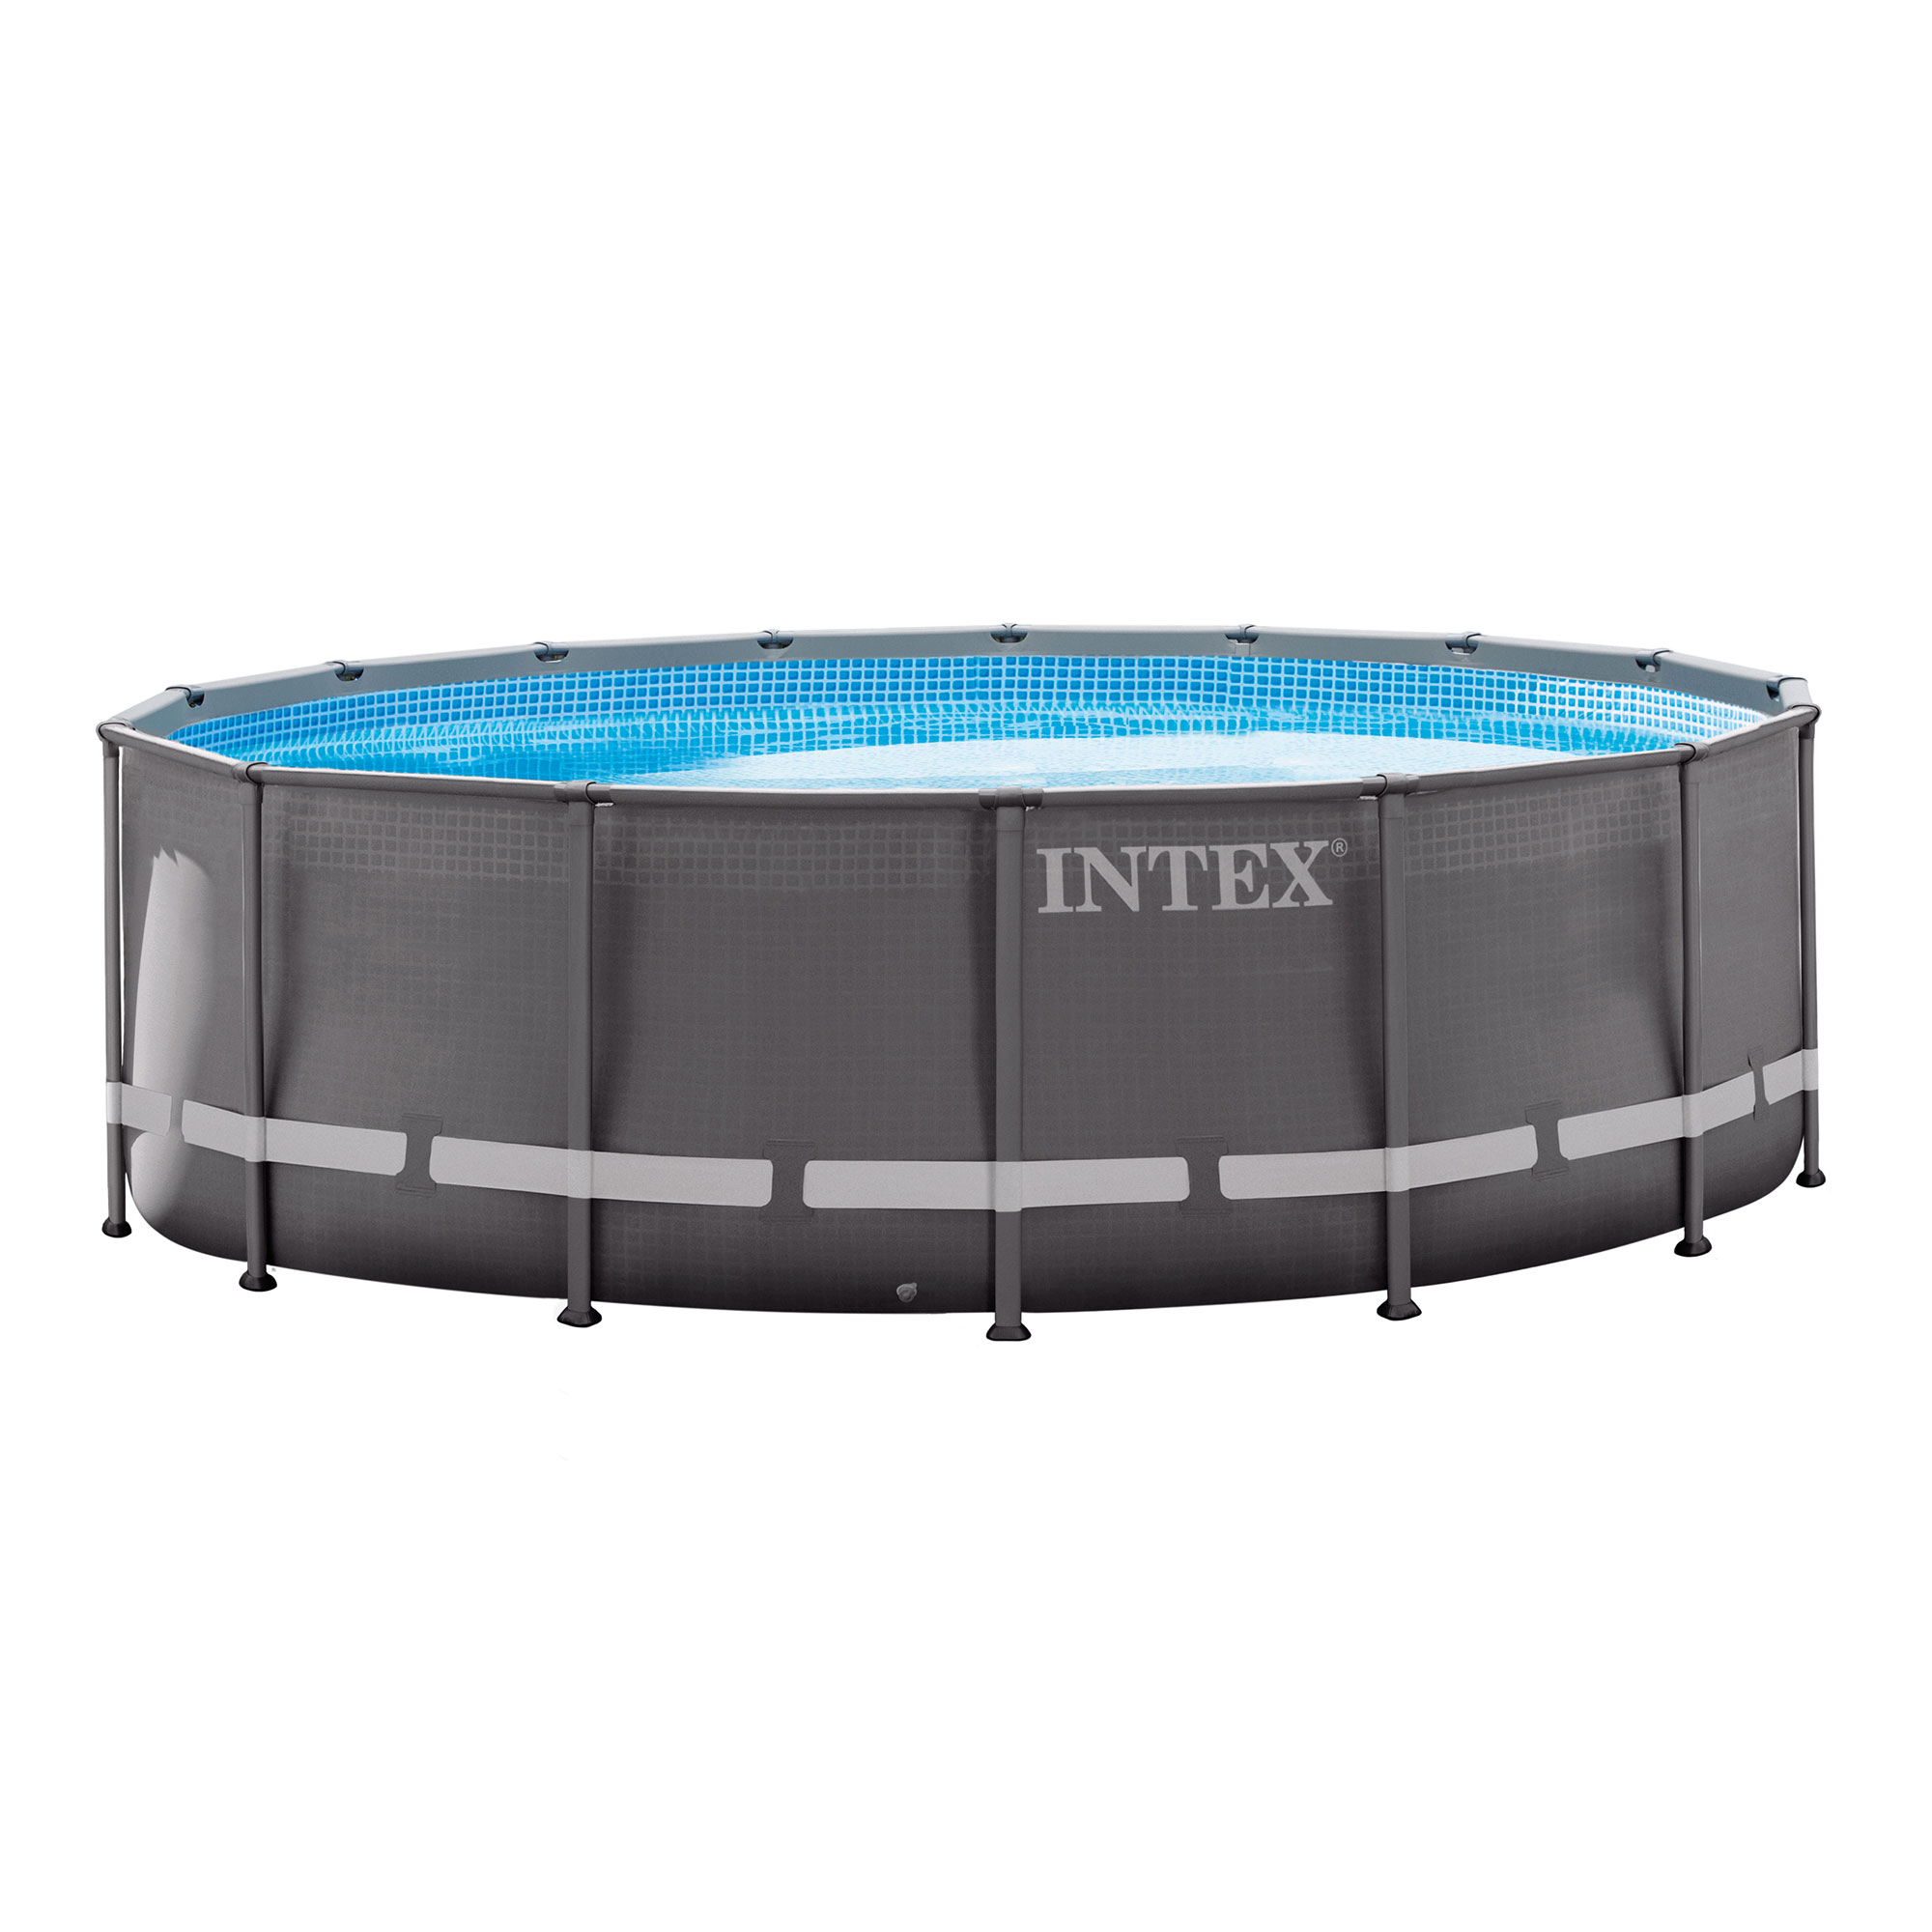 "Intex 16' x 48"" Ultra Frame Above Ground Swimming Pool Set with Ladder & Pump by Intex"